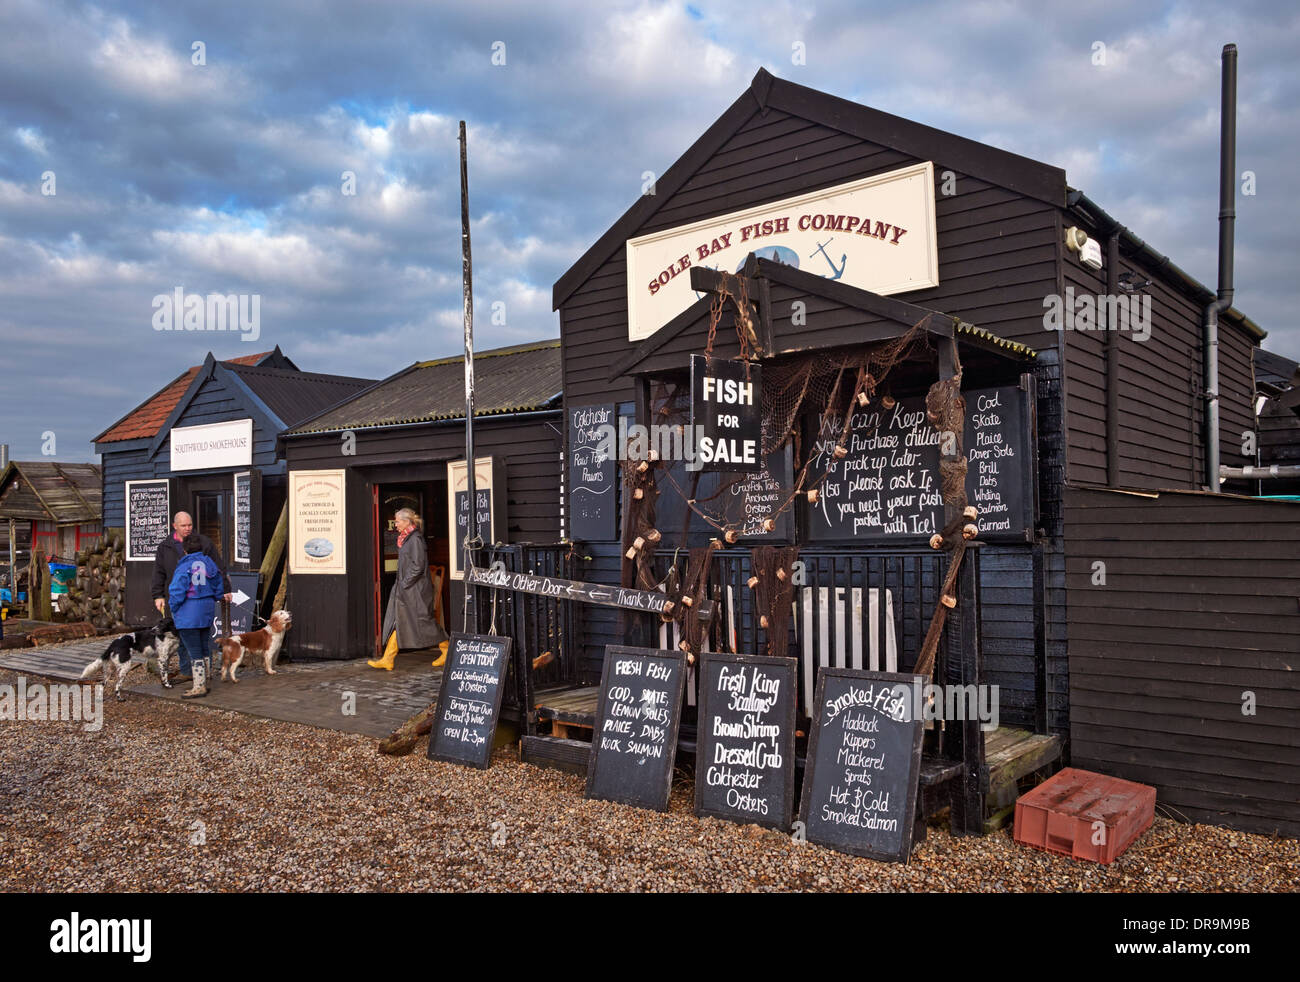 Suola Bay Fish Company, Southwold Harbour, Suffolk, Inghilterra. Immagini Stock